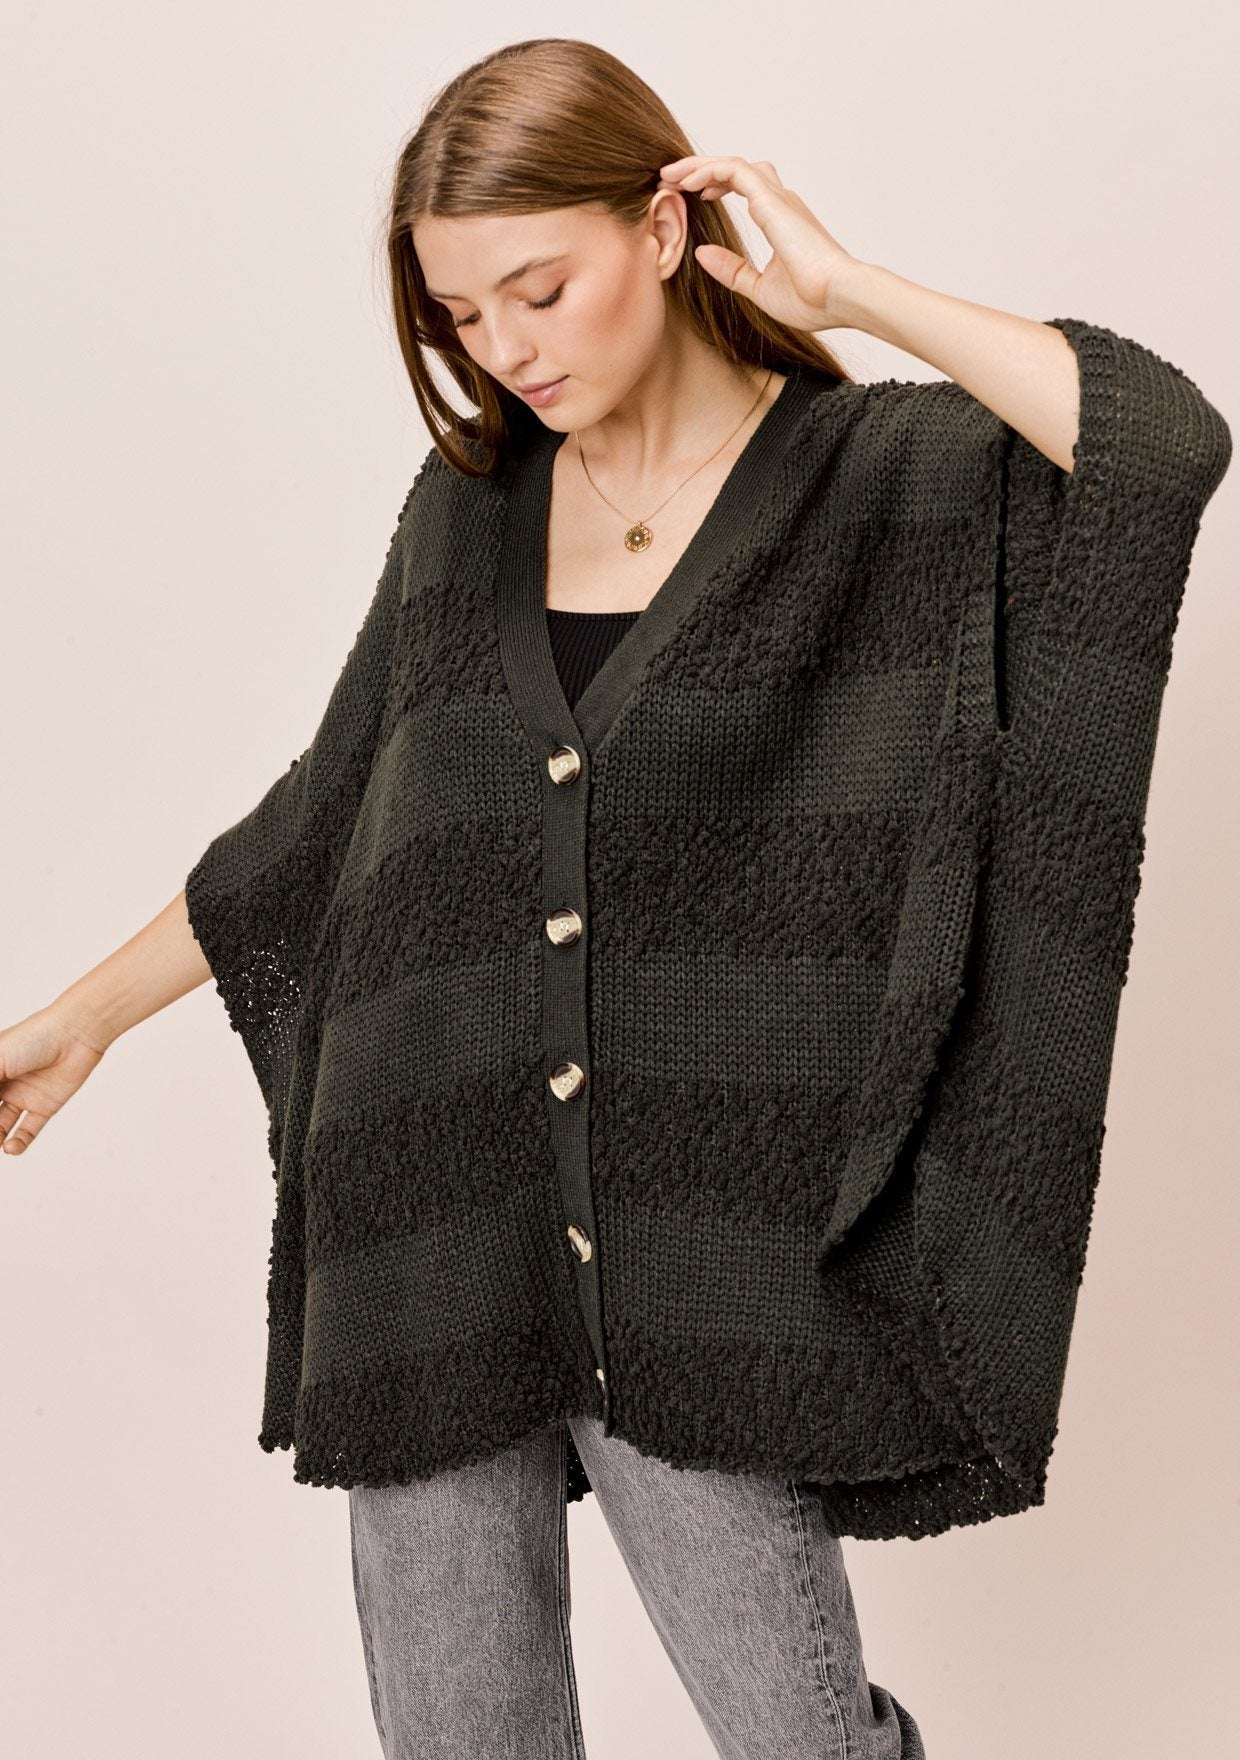 [Color: Olive Green] Lovestitch olive green Oversized, popcorn stripe, button down, poncho style cardigan.